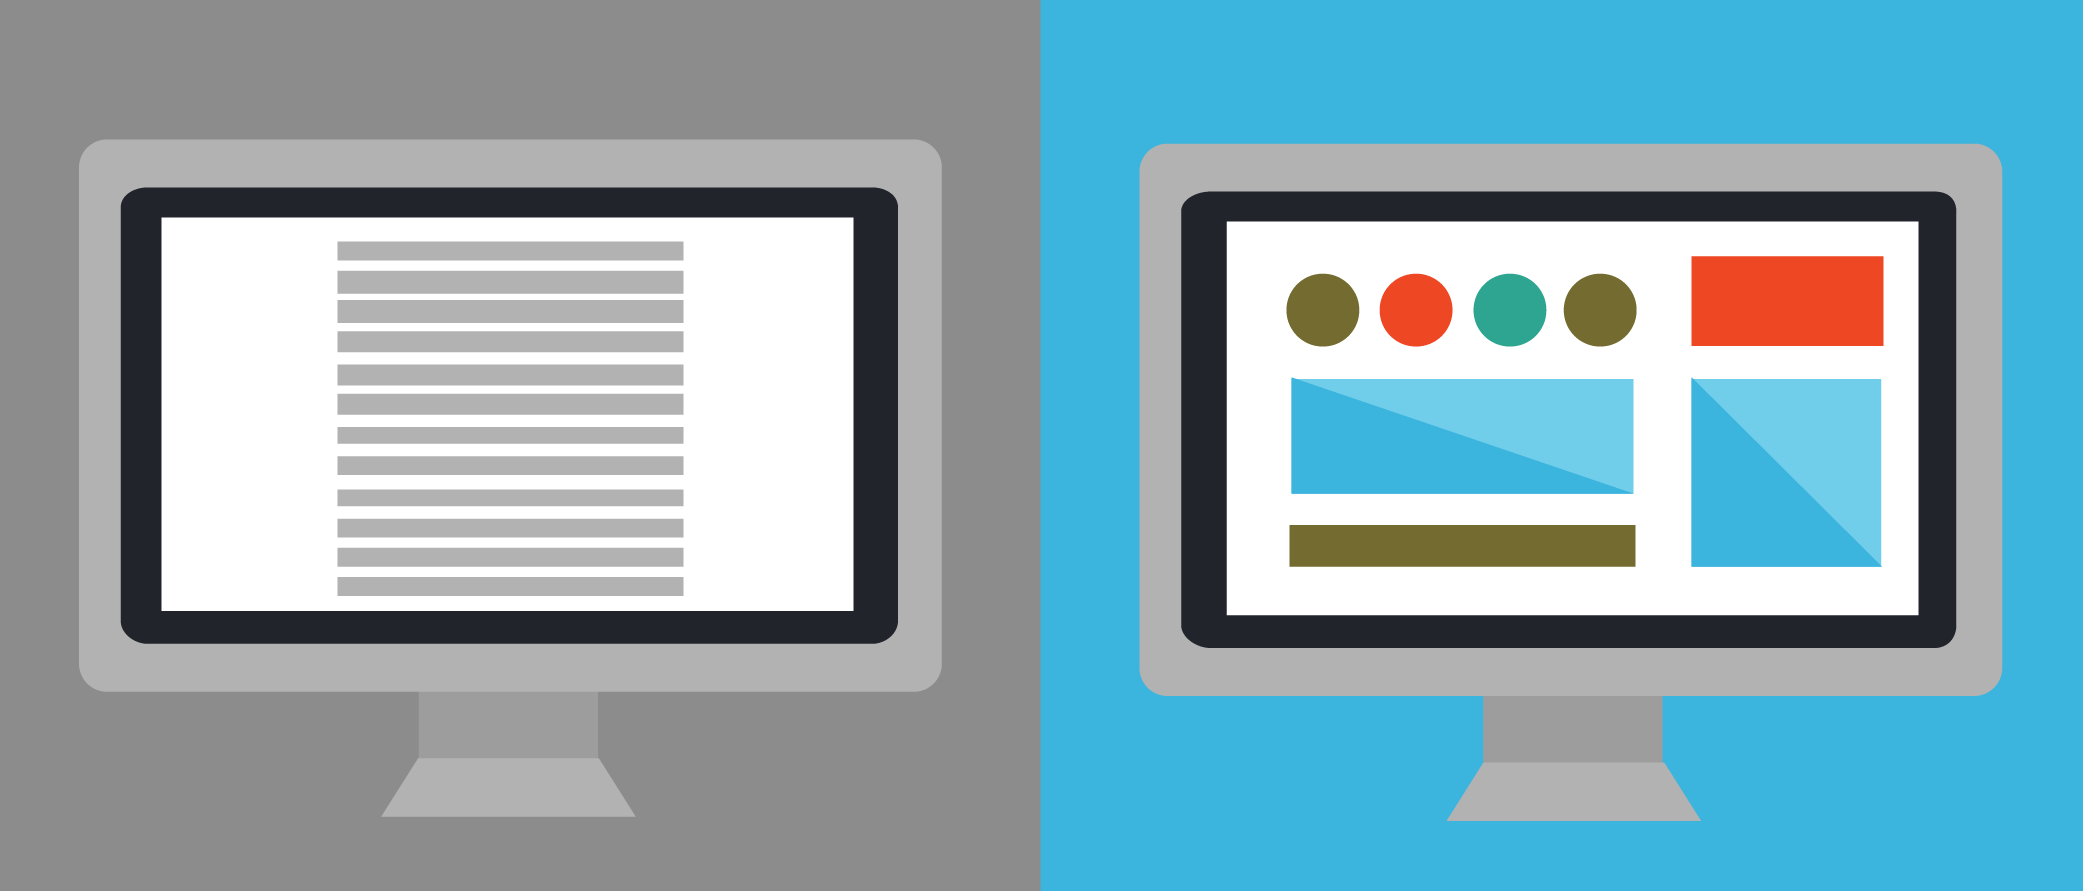 Illustration of 2 computer screens: 1 with text, and 1 with images.